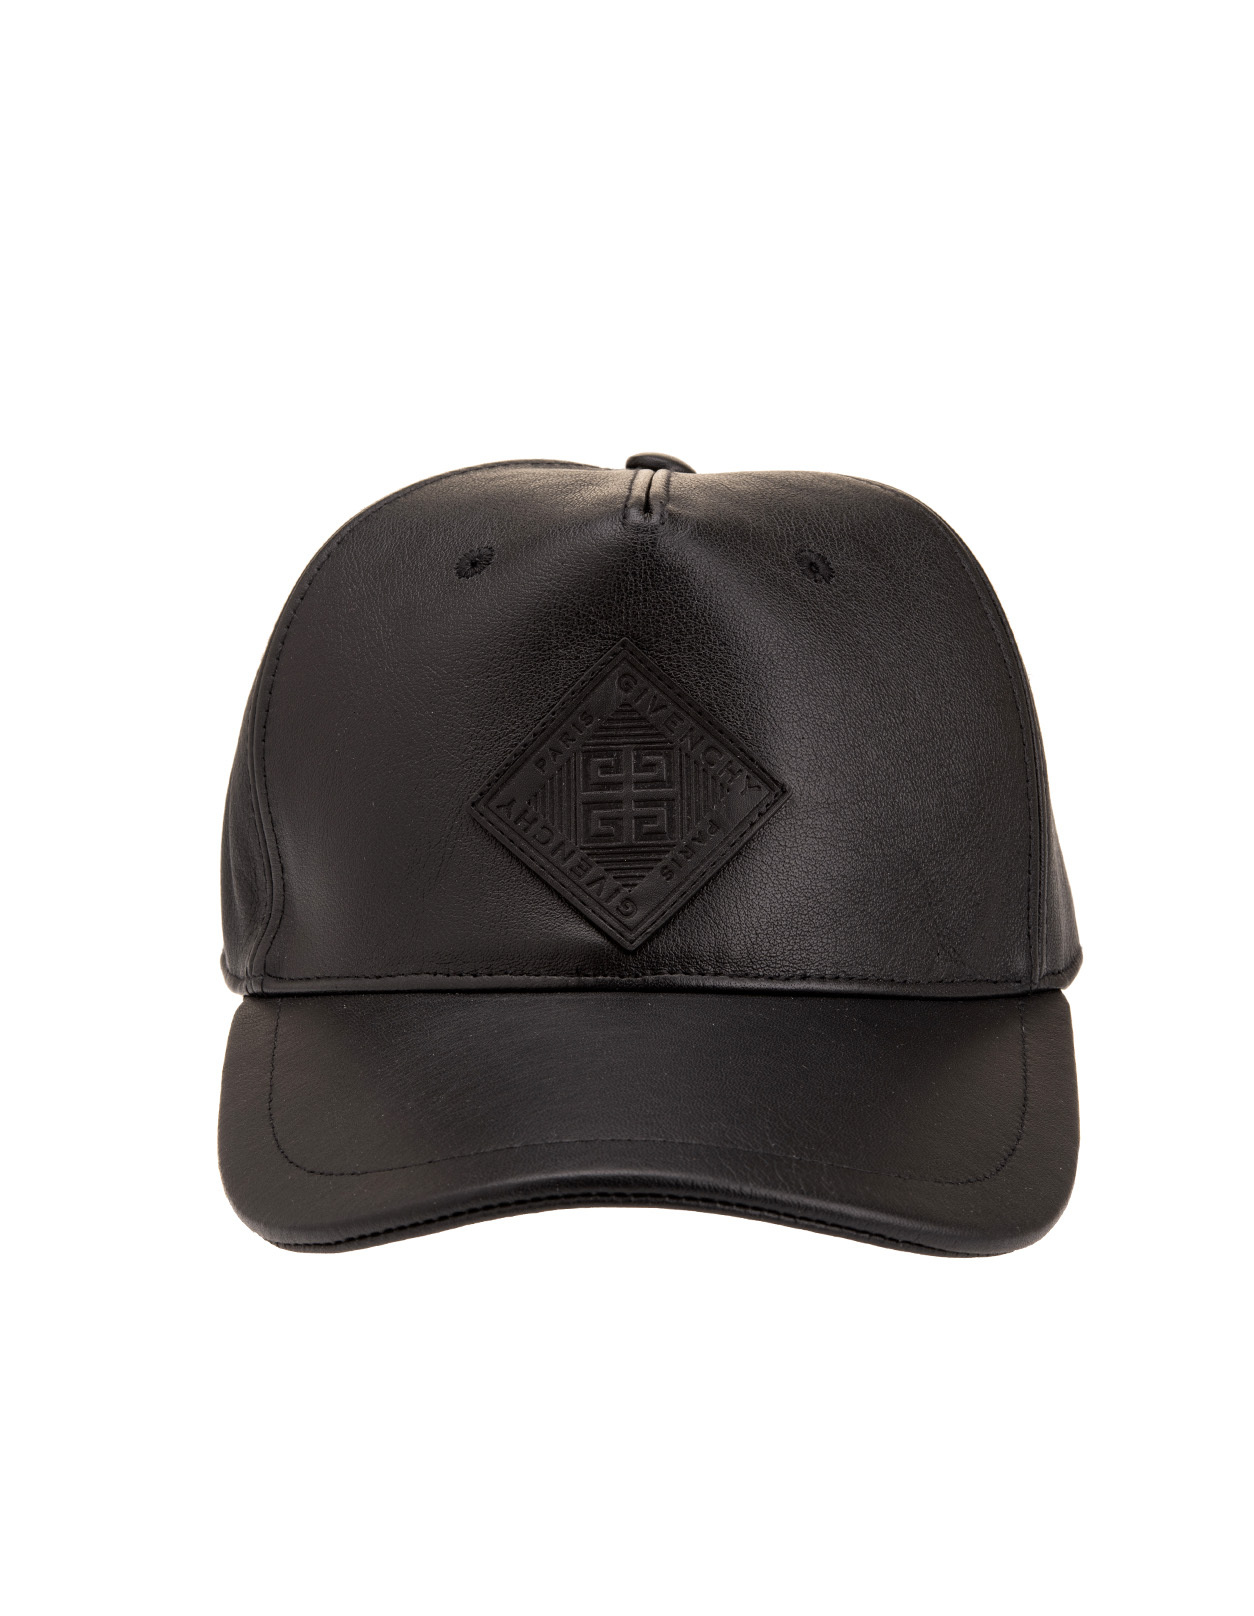 f4739b76625 Black Leather Cap With GIVENCHY 4G Application - GIVENCHY - Russocapri